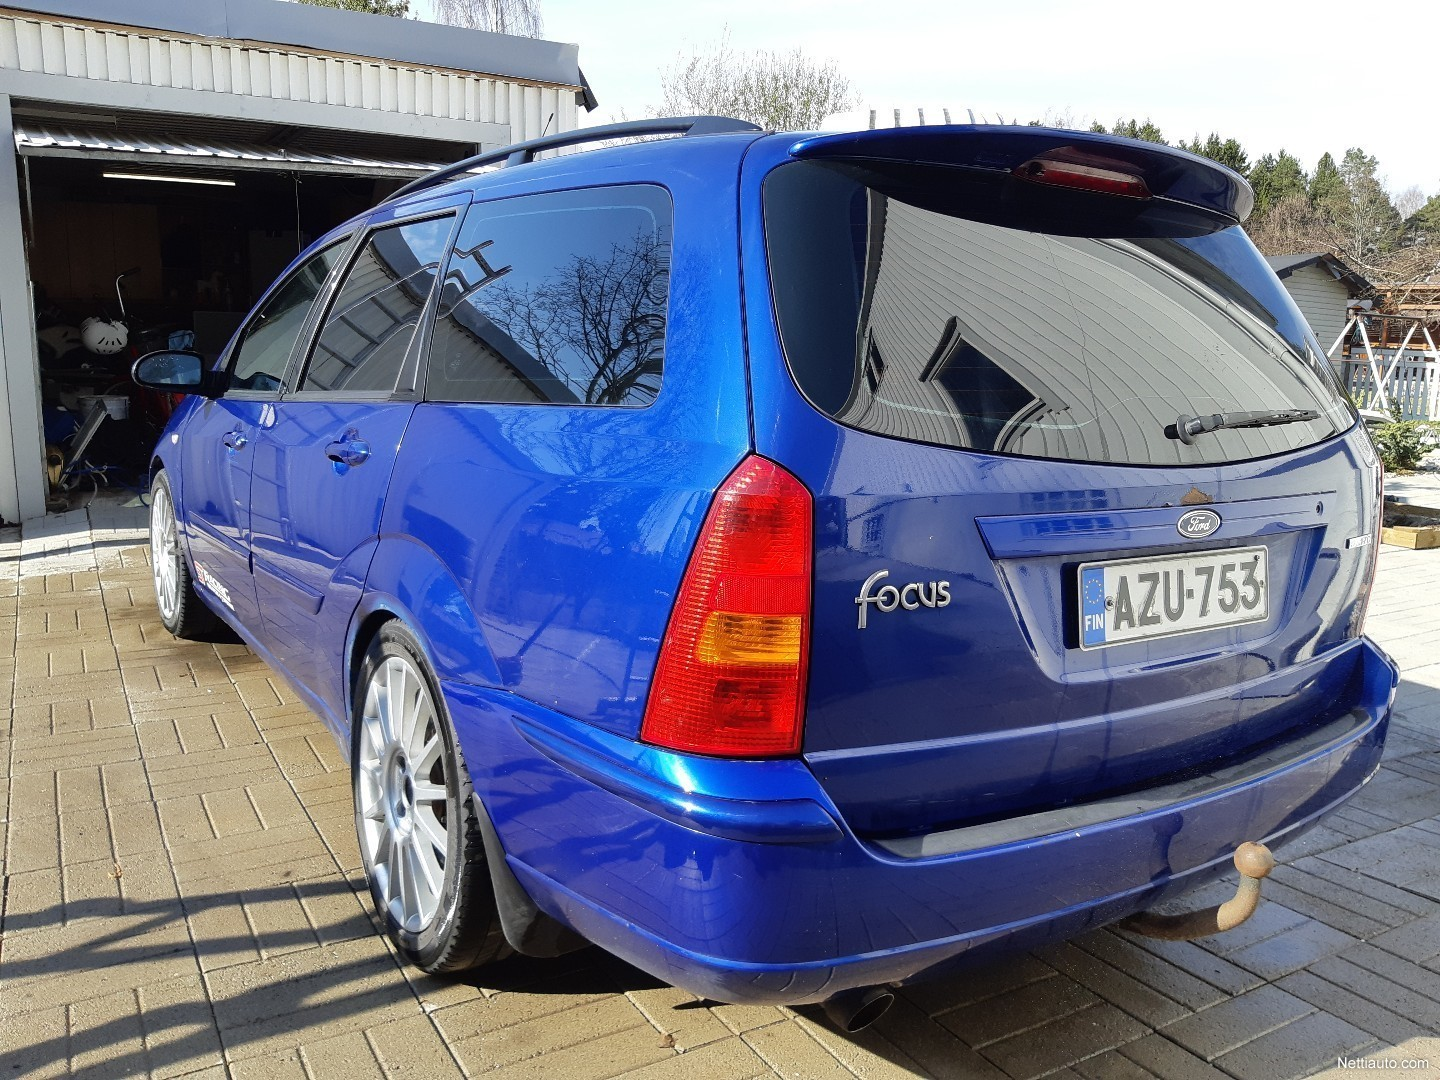 Ford Focus 2 0i St170 Wagon Farmari 2002 - Vaihtoauto